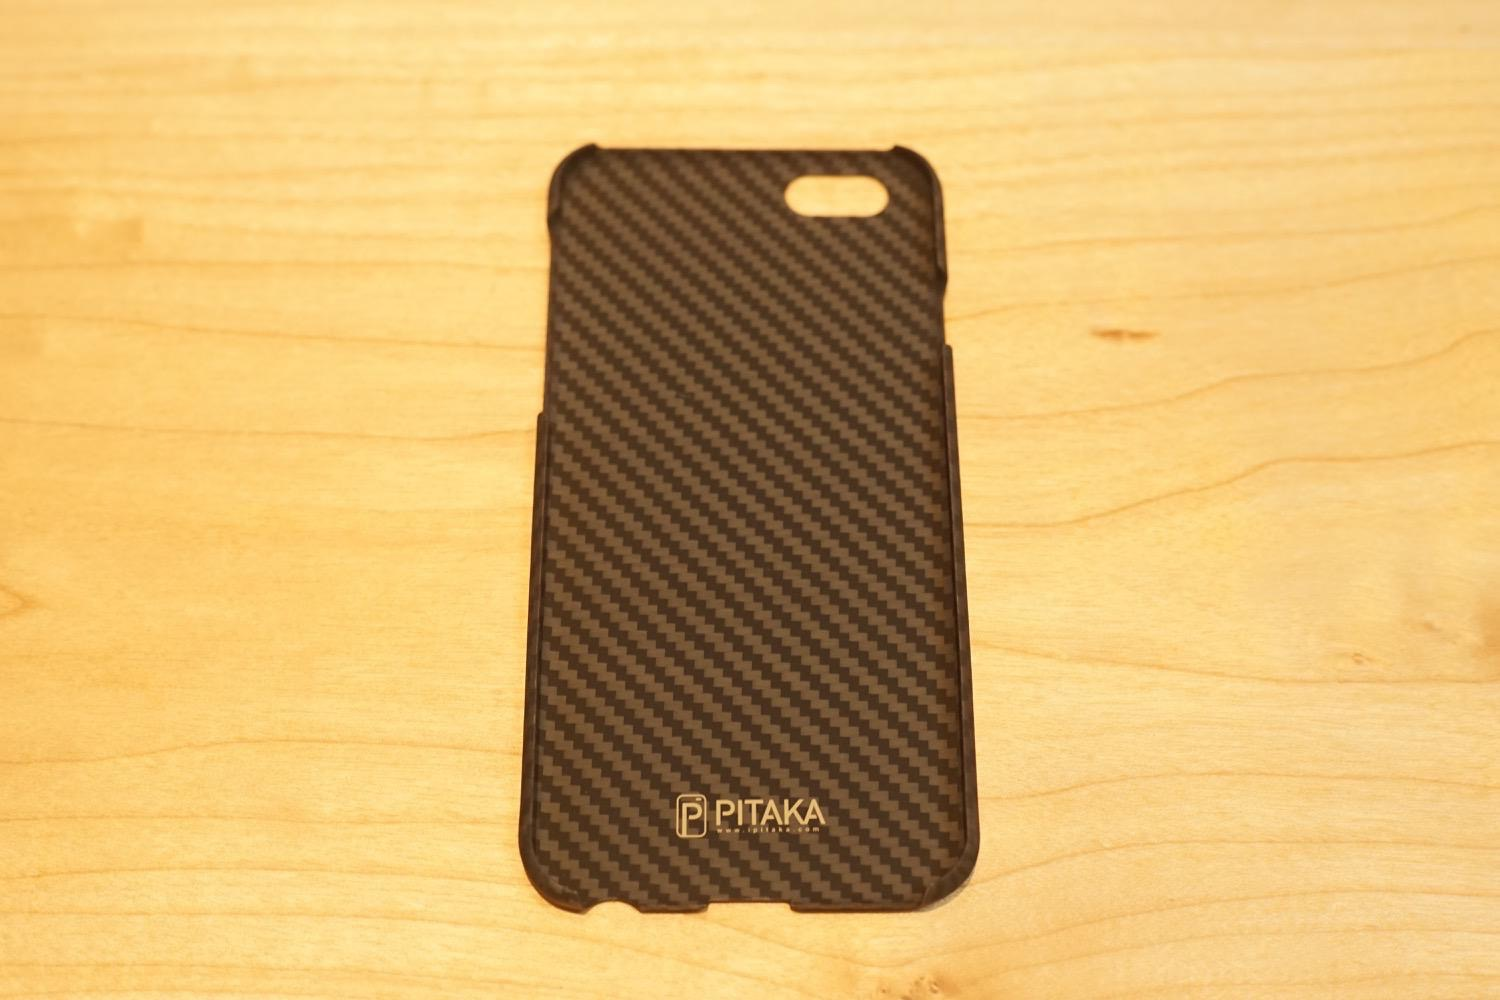 Pitaka iphone6 case11